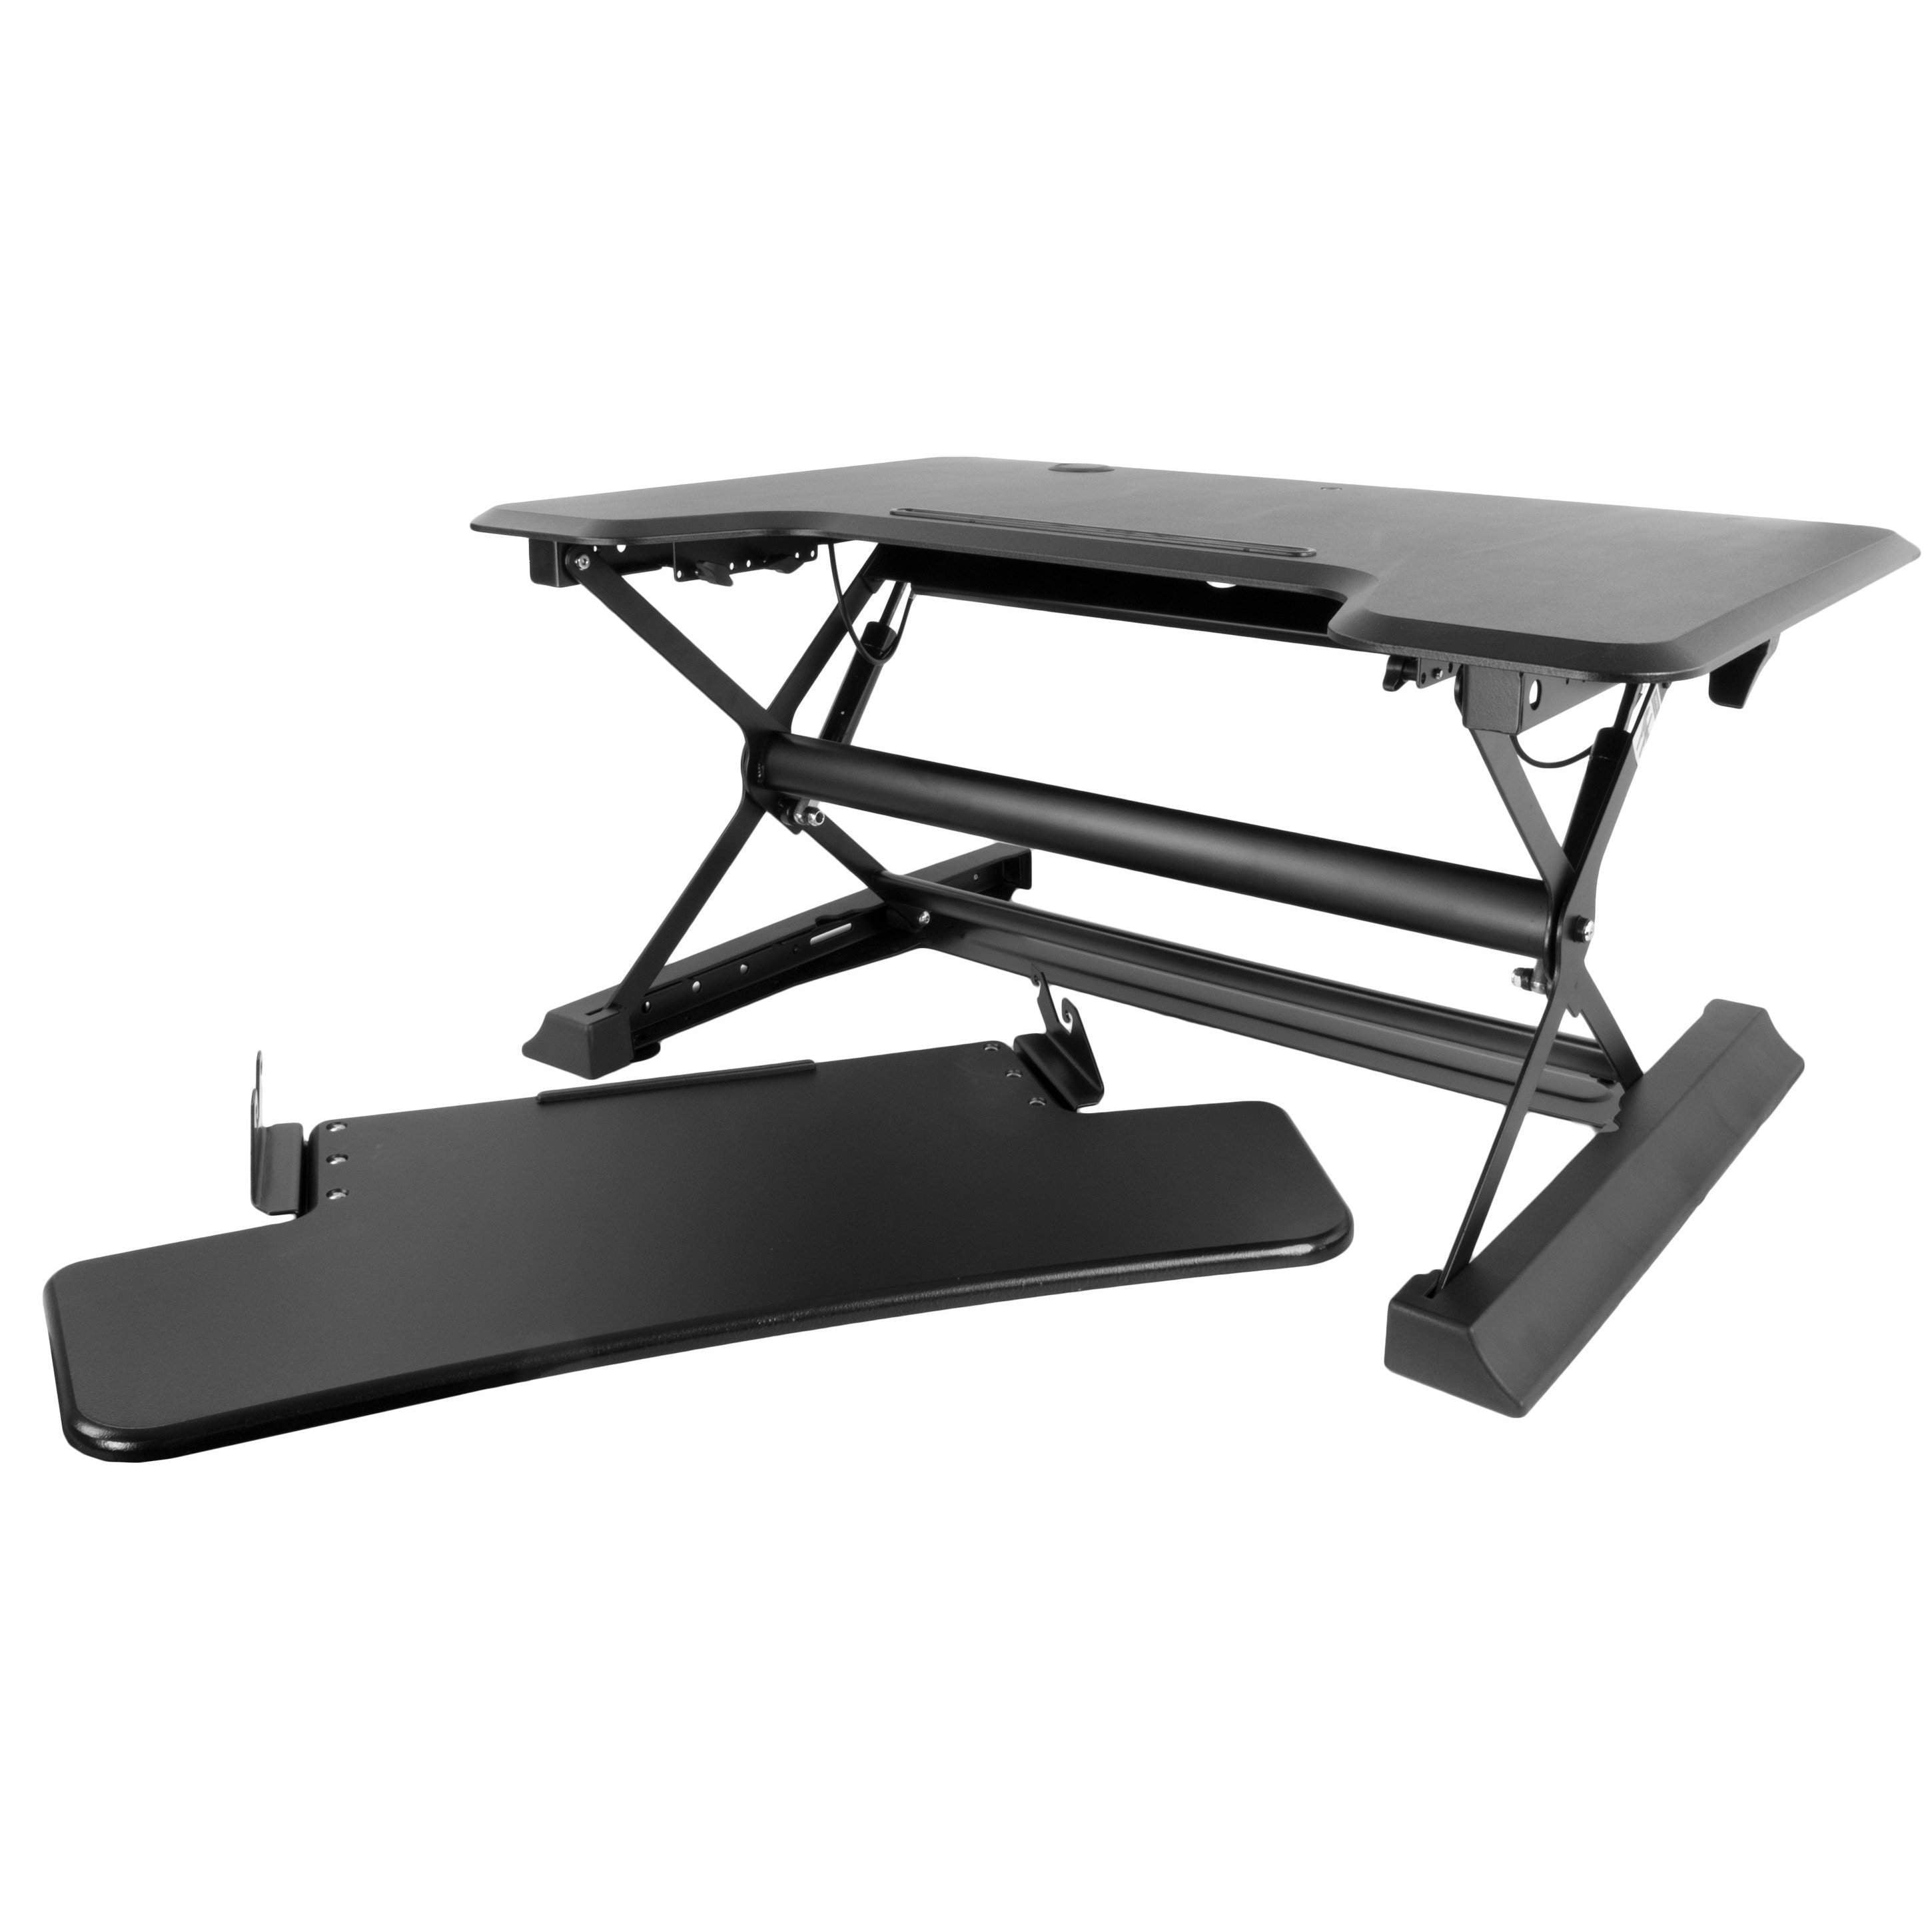 t amazing ergotron desk tabletop standing workfit pertaining to